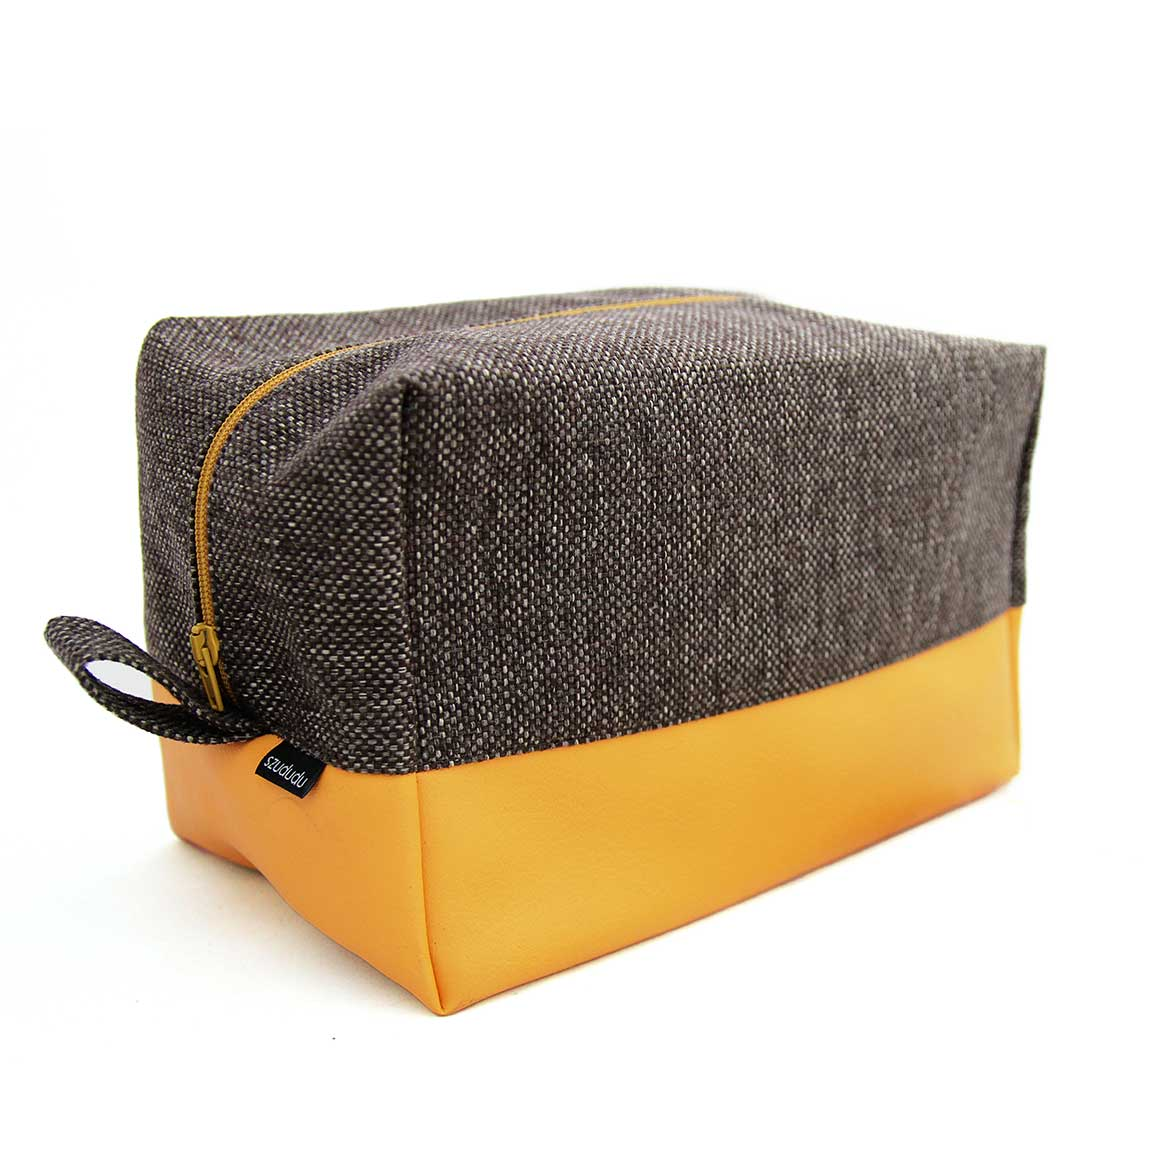 Large Travel Bags Large Toiletry Bag Yellow Travel Accessories By Szududu